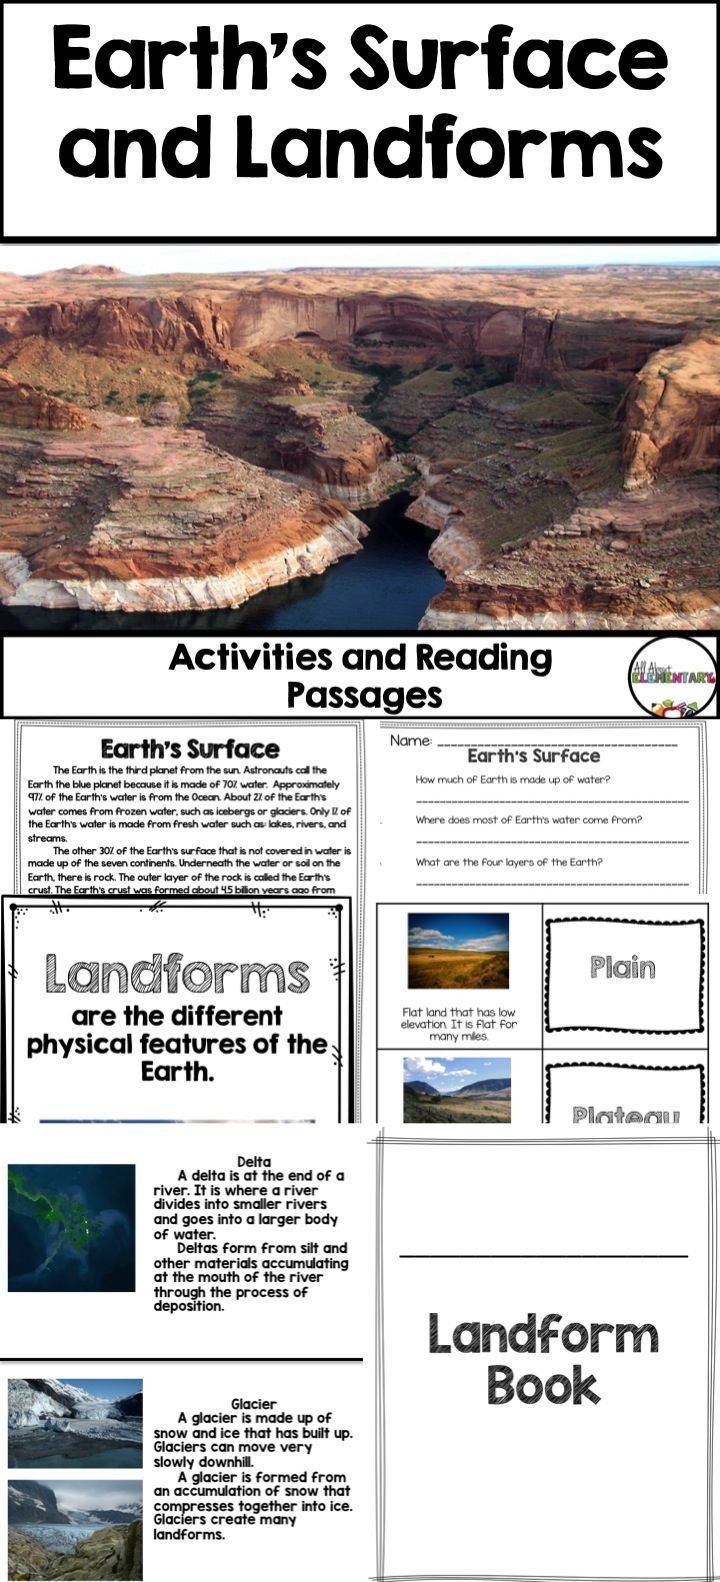 Earths Surface And Landforms Reading Passages Activities The Blobz Guide Teach Simple Electronic Circuits To Children Use This 72 Page Resource For Your Next Earth Science Lesson With 3rd 4th